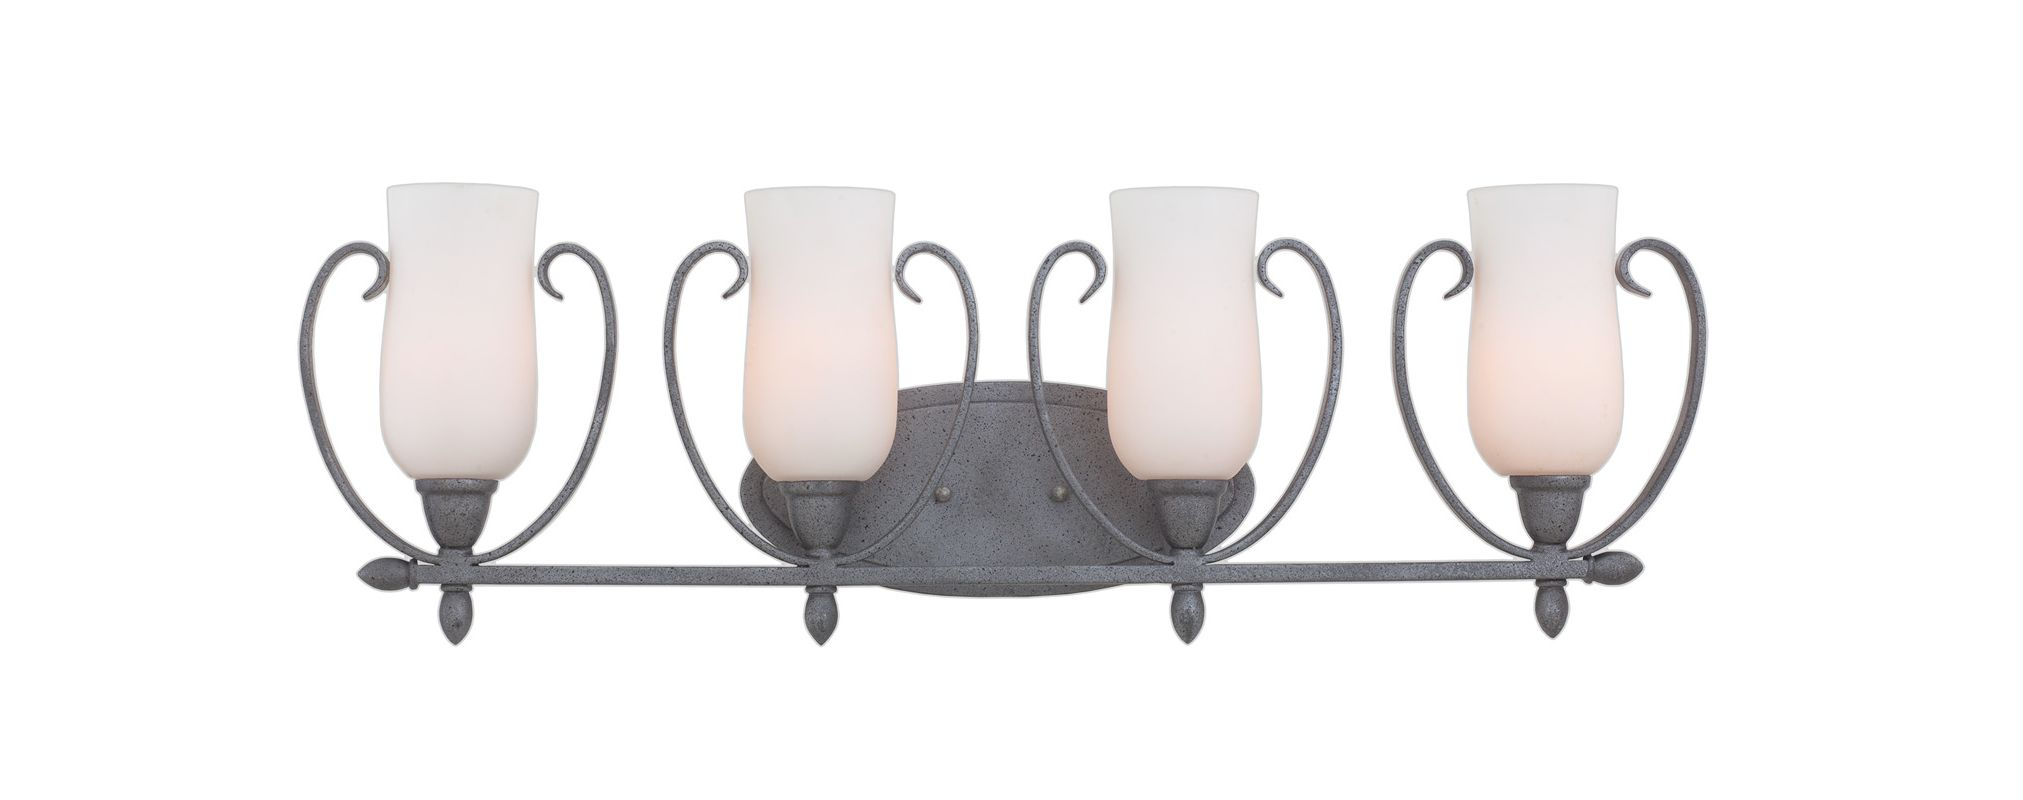 Kalco 7234FI/OPAL Mateo 4 Light Bathroom Vanity Light Flecked Iron Sale $250.00 ITEM: bci2593164 ID#:7234FI/OPAL UPC: 720062261521 :